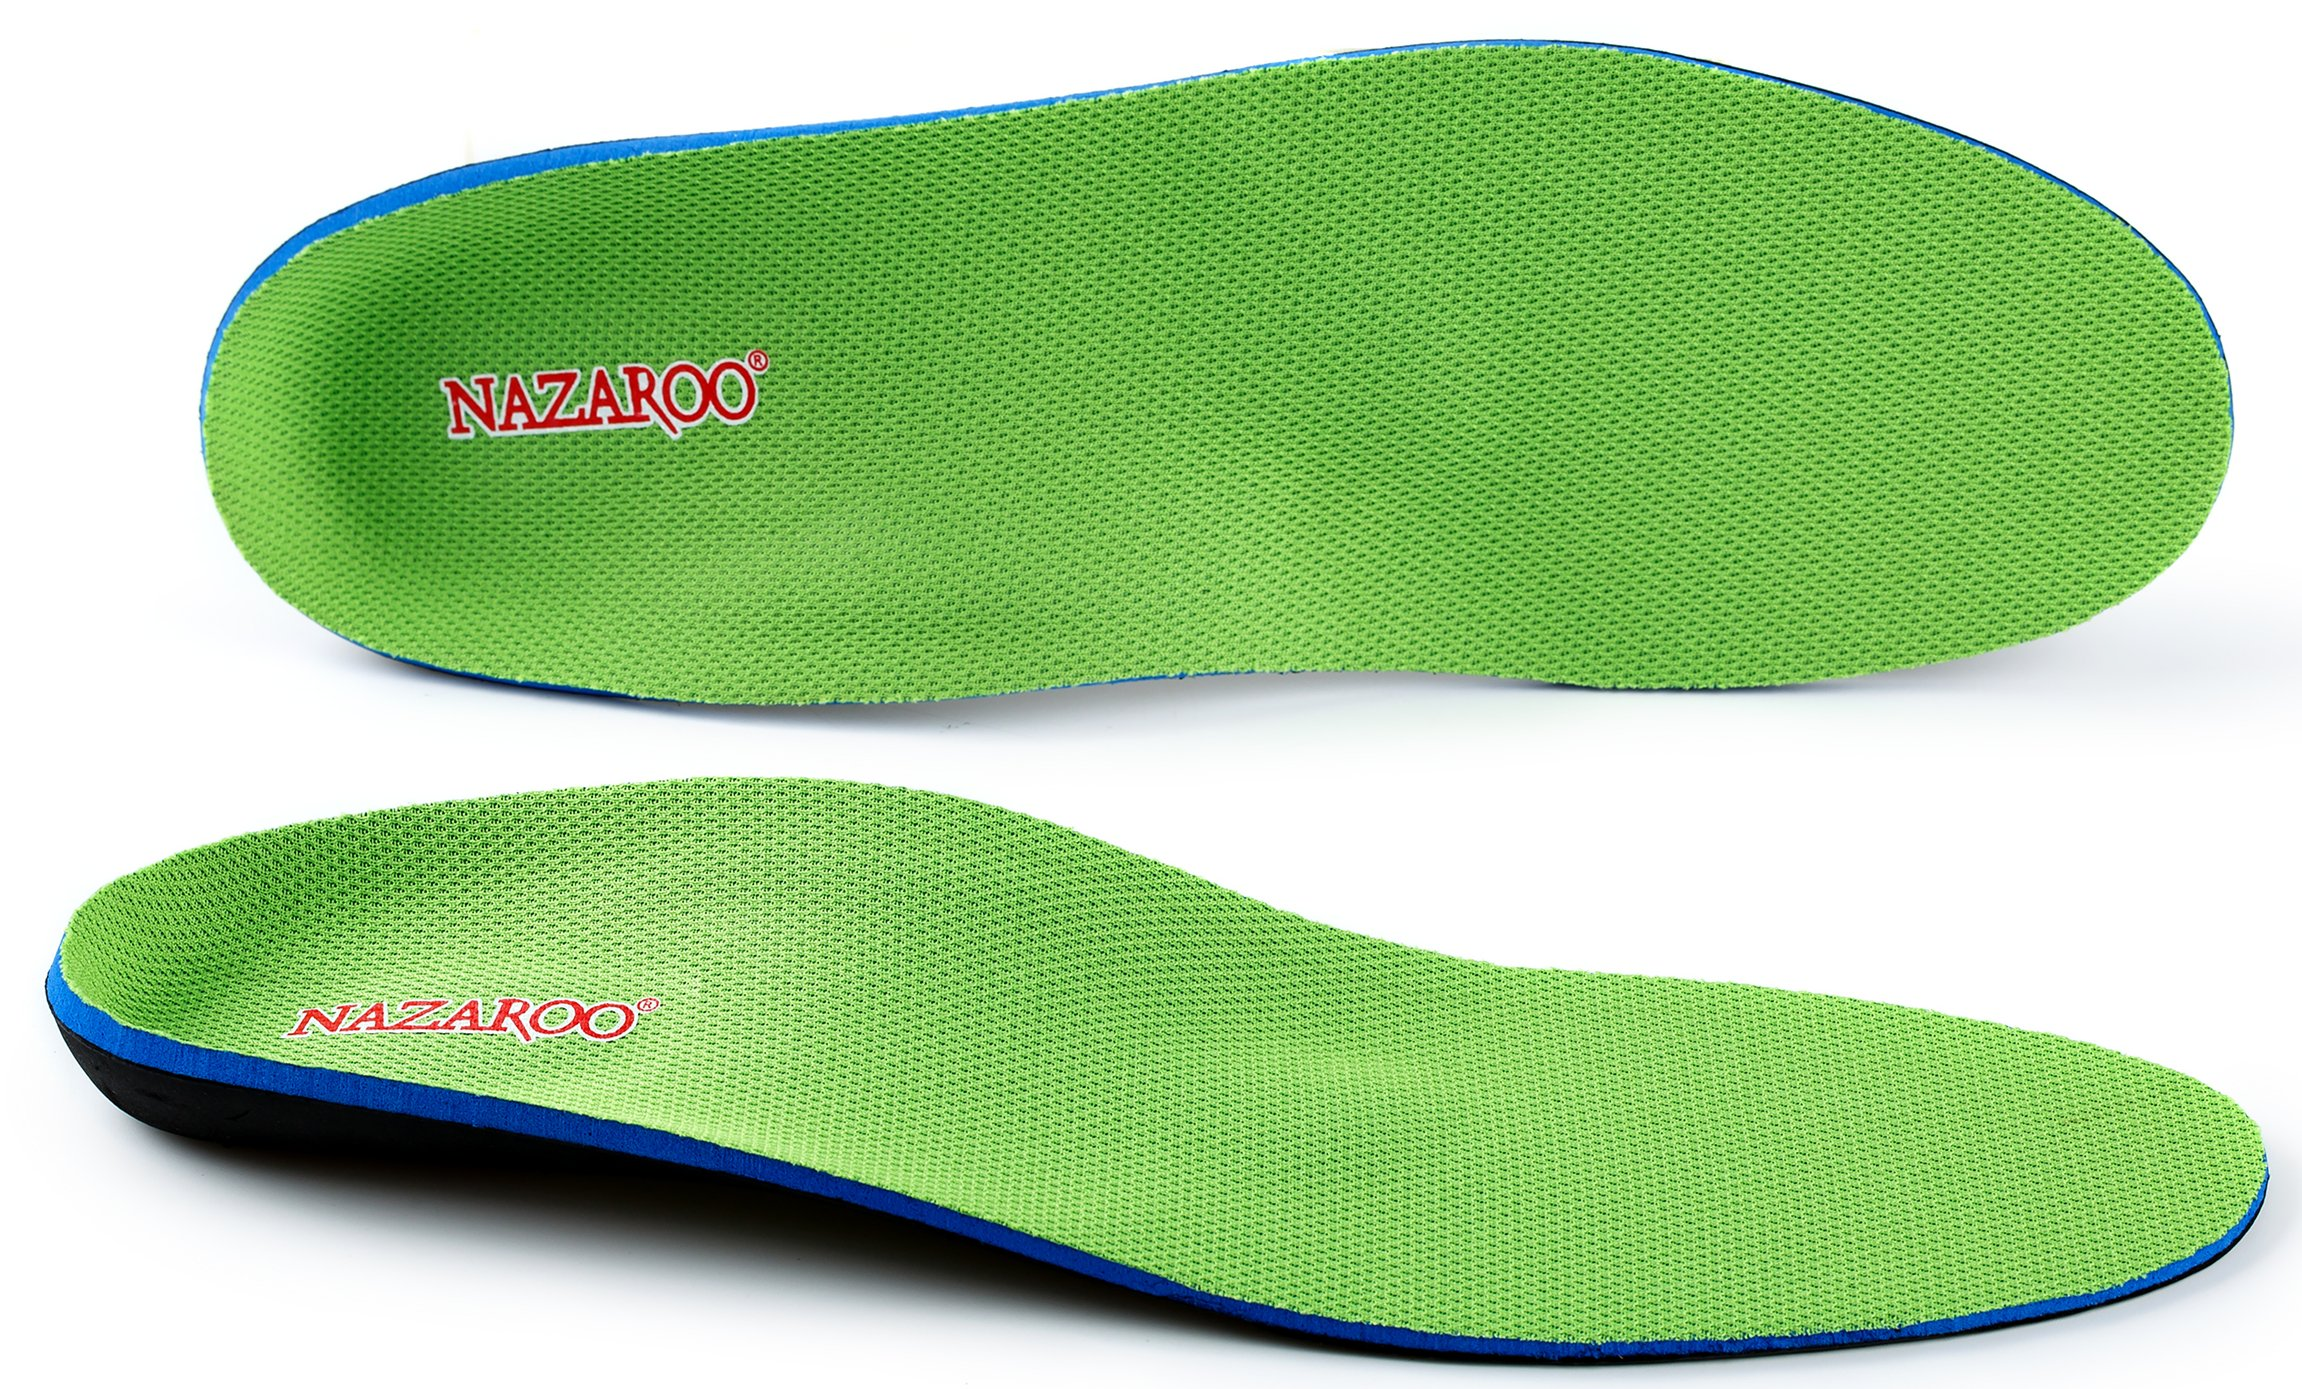 Orthotics for Flat Feet by NAZAROO, Shoe Inserts Arch Support Insoles Fight Against Plantar Fasciitis, Relieve Feet Pain, Heel Pain and Pronation for Men and Women (US Mens 10-10.5 | Womens 12-12.5)